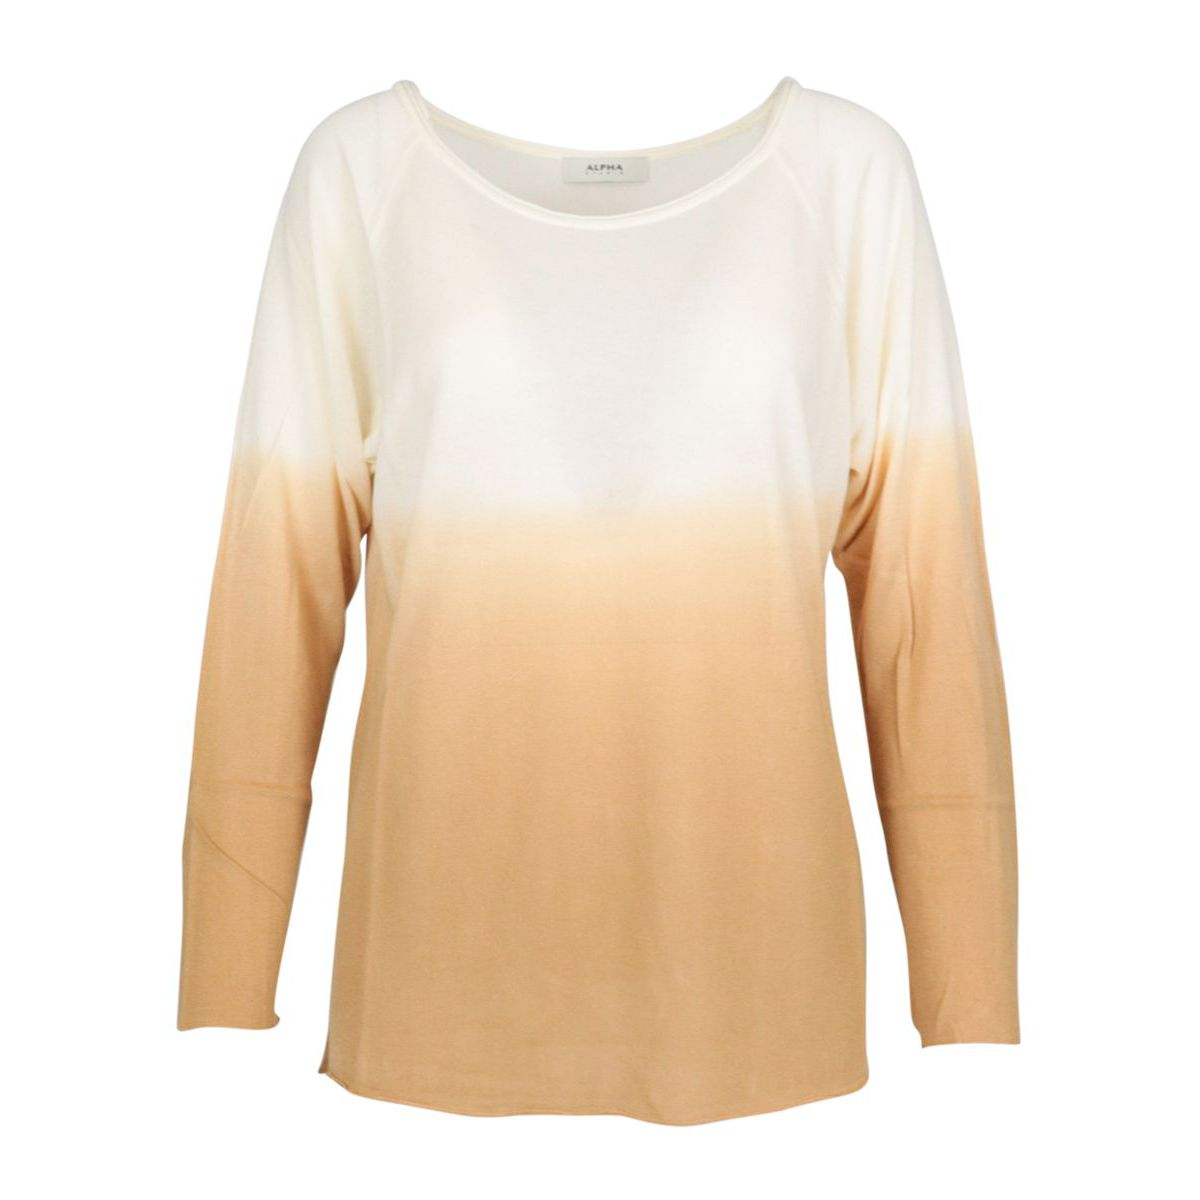 Modal and cashmere blend sweater with boat neckline Bronze Alpha Studio